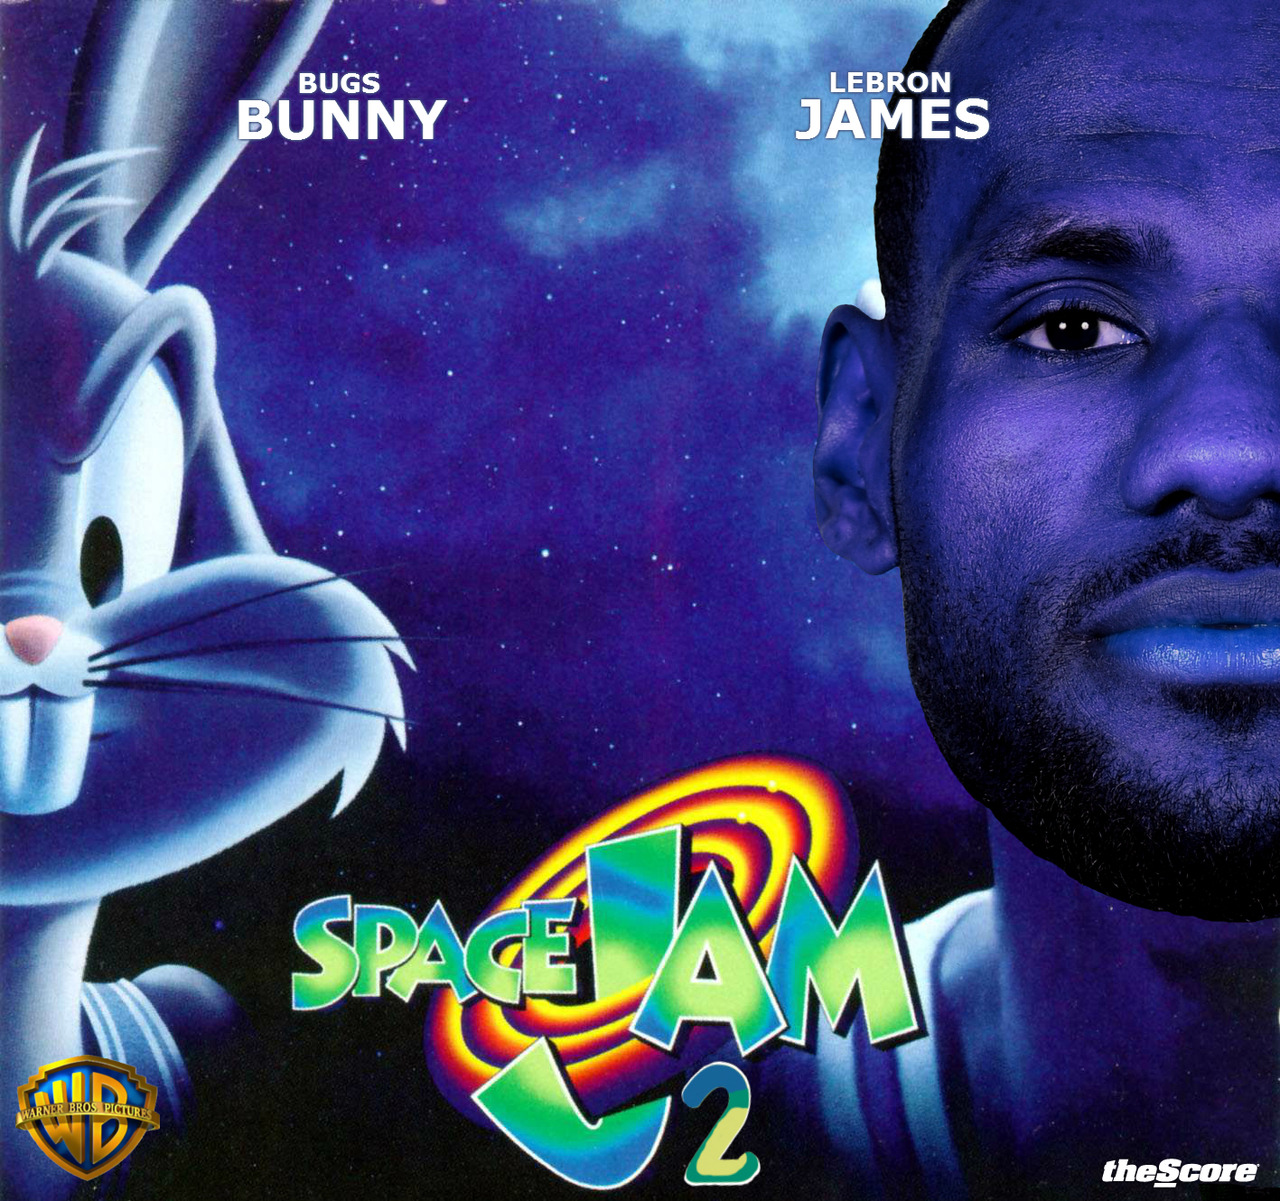 This would be AWESOME… Space Jam 2 starring Mr. LeBron James.